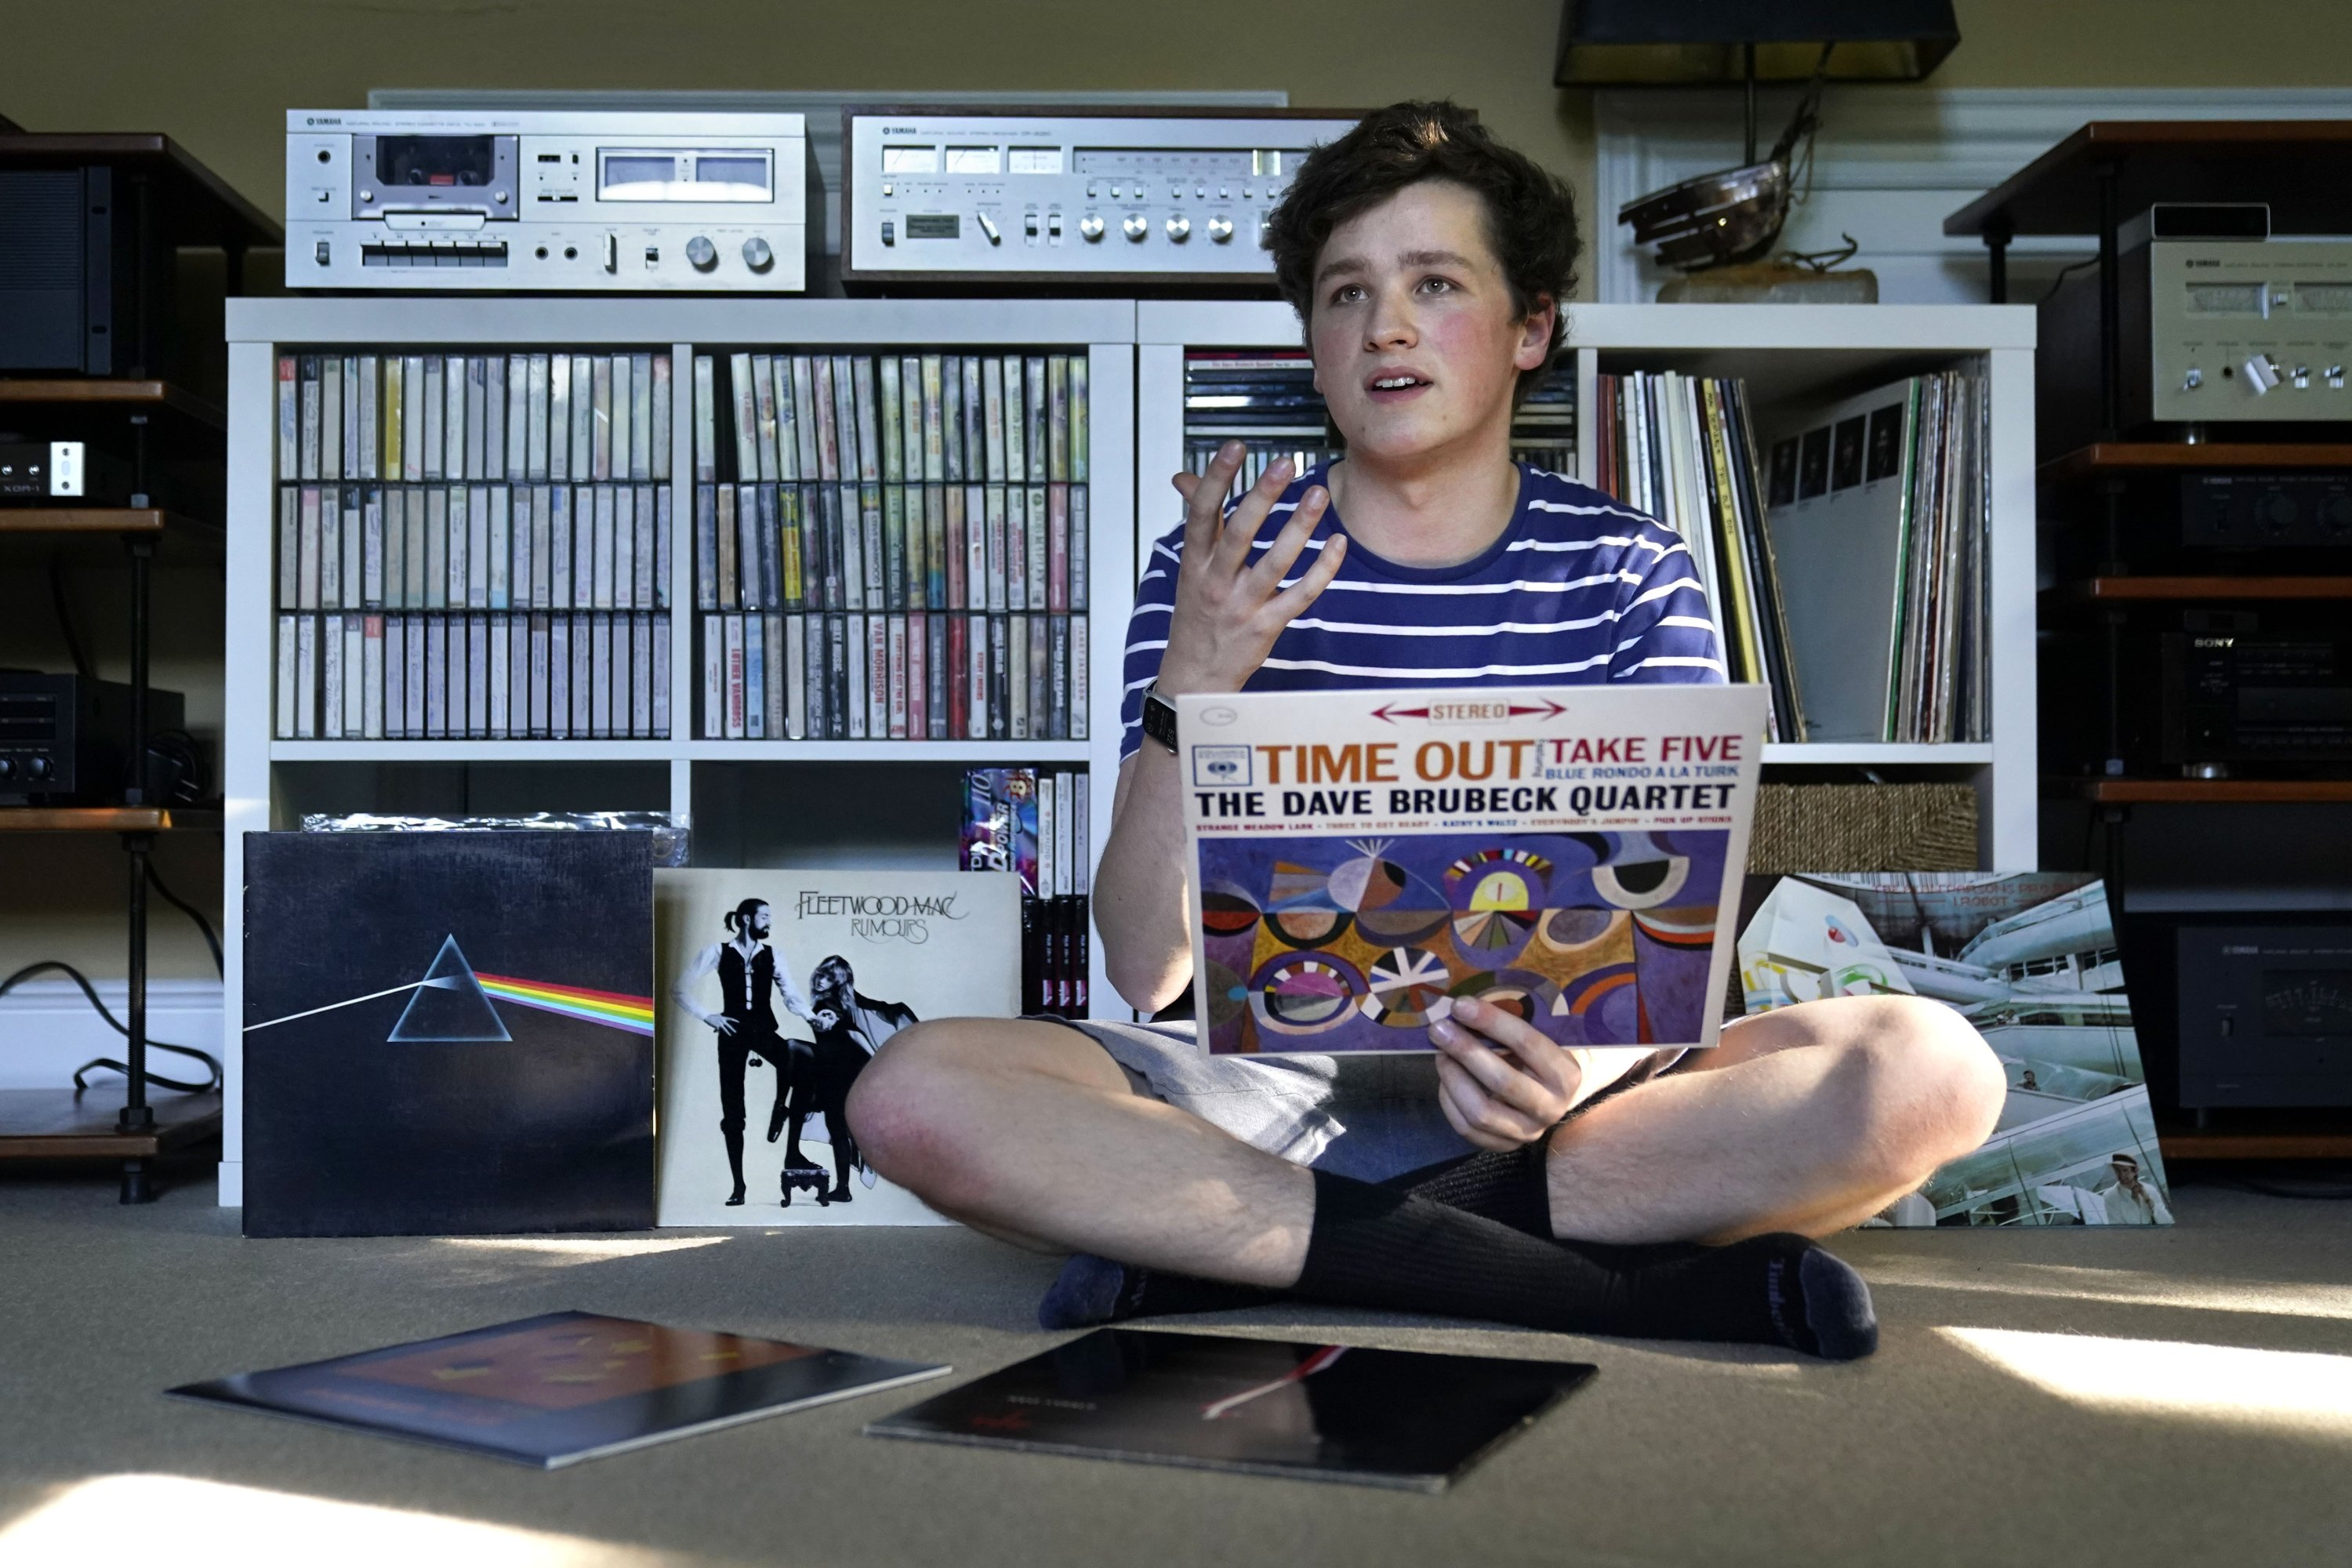 Will Emanuel discusses his interest in vinyl records at his home, in Falmouth, Maine, U.S., May 27, 2021. (AP Photo)